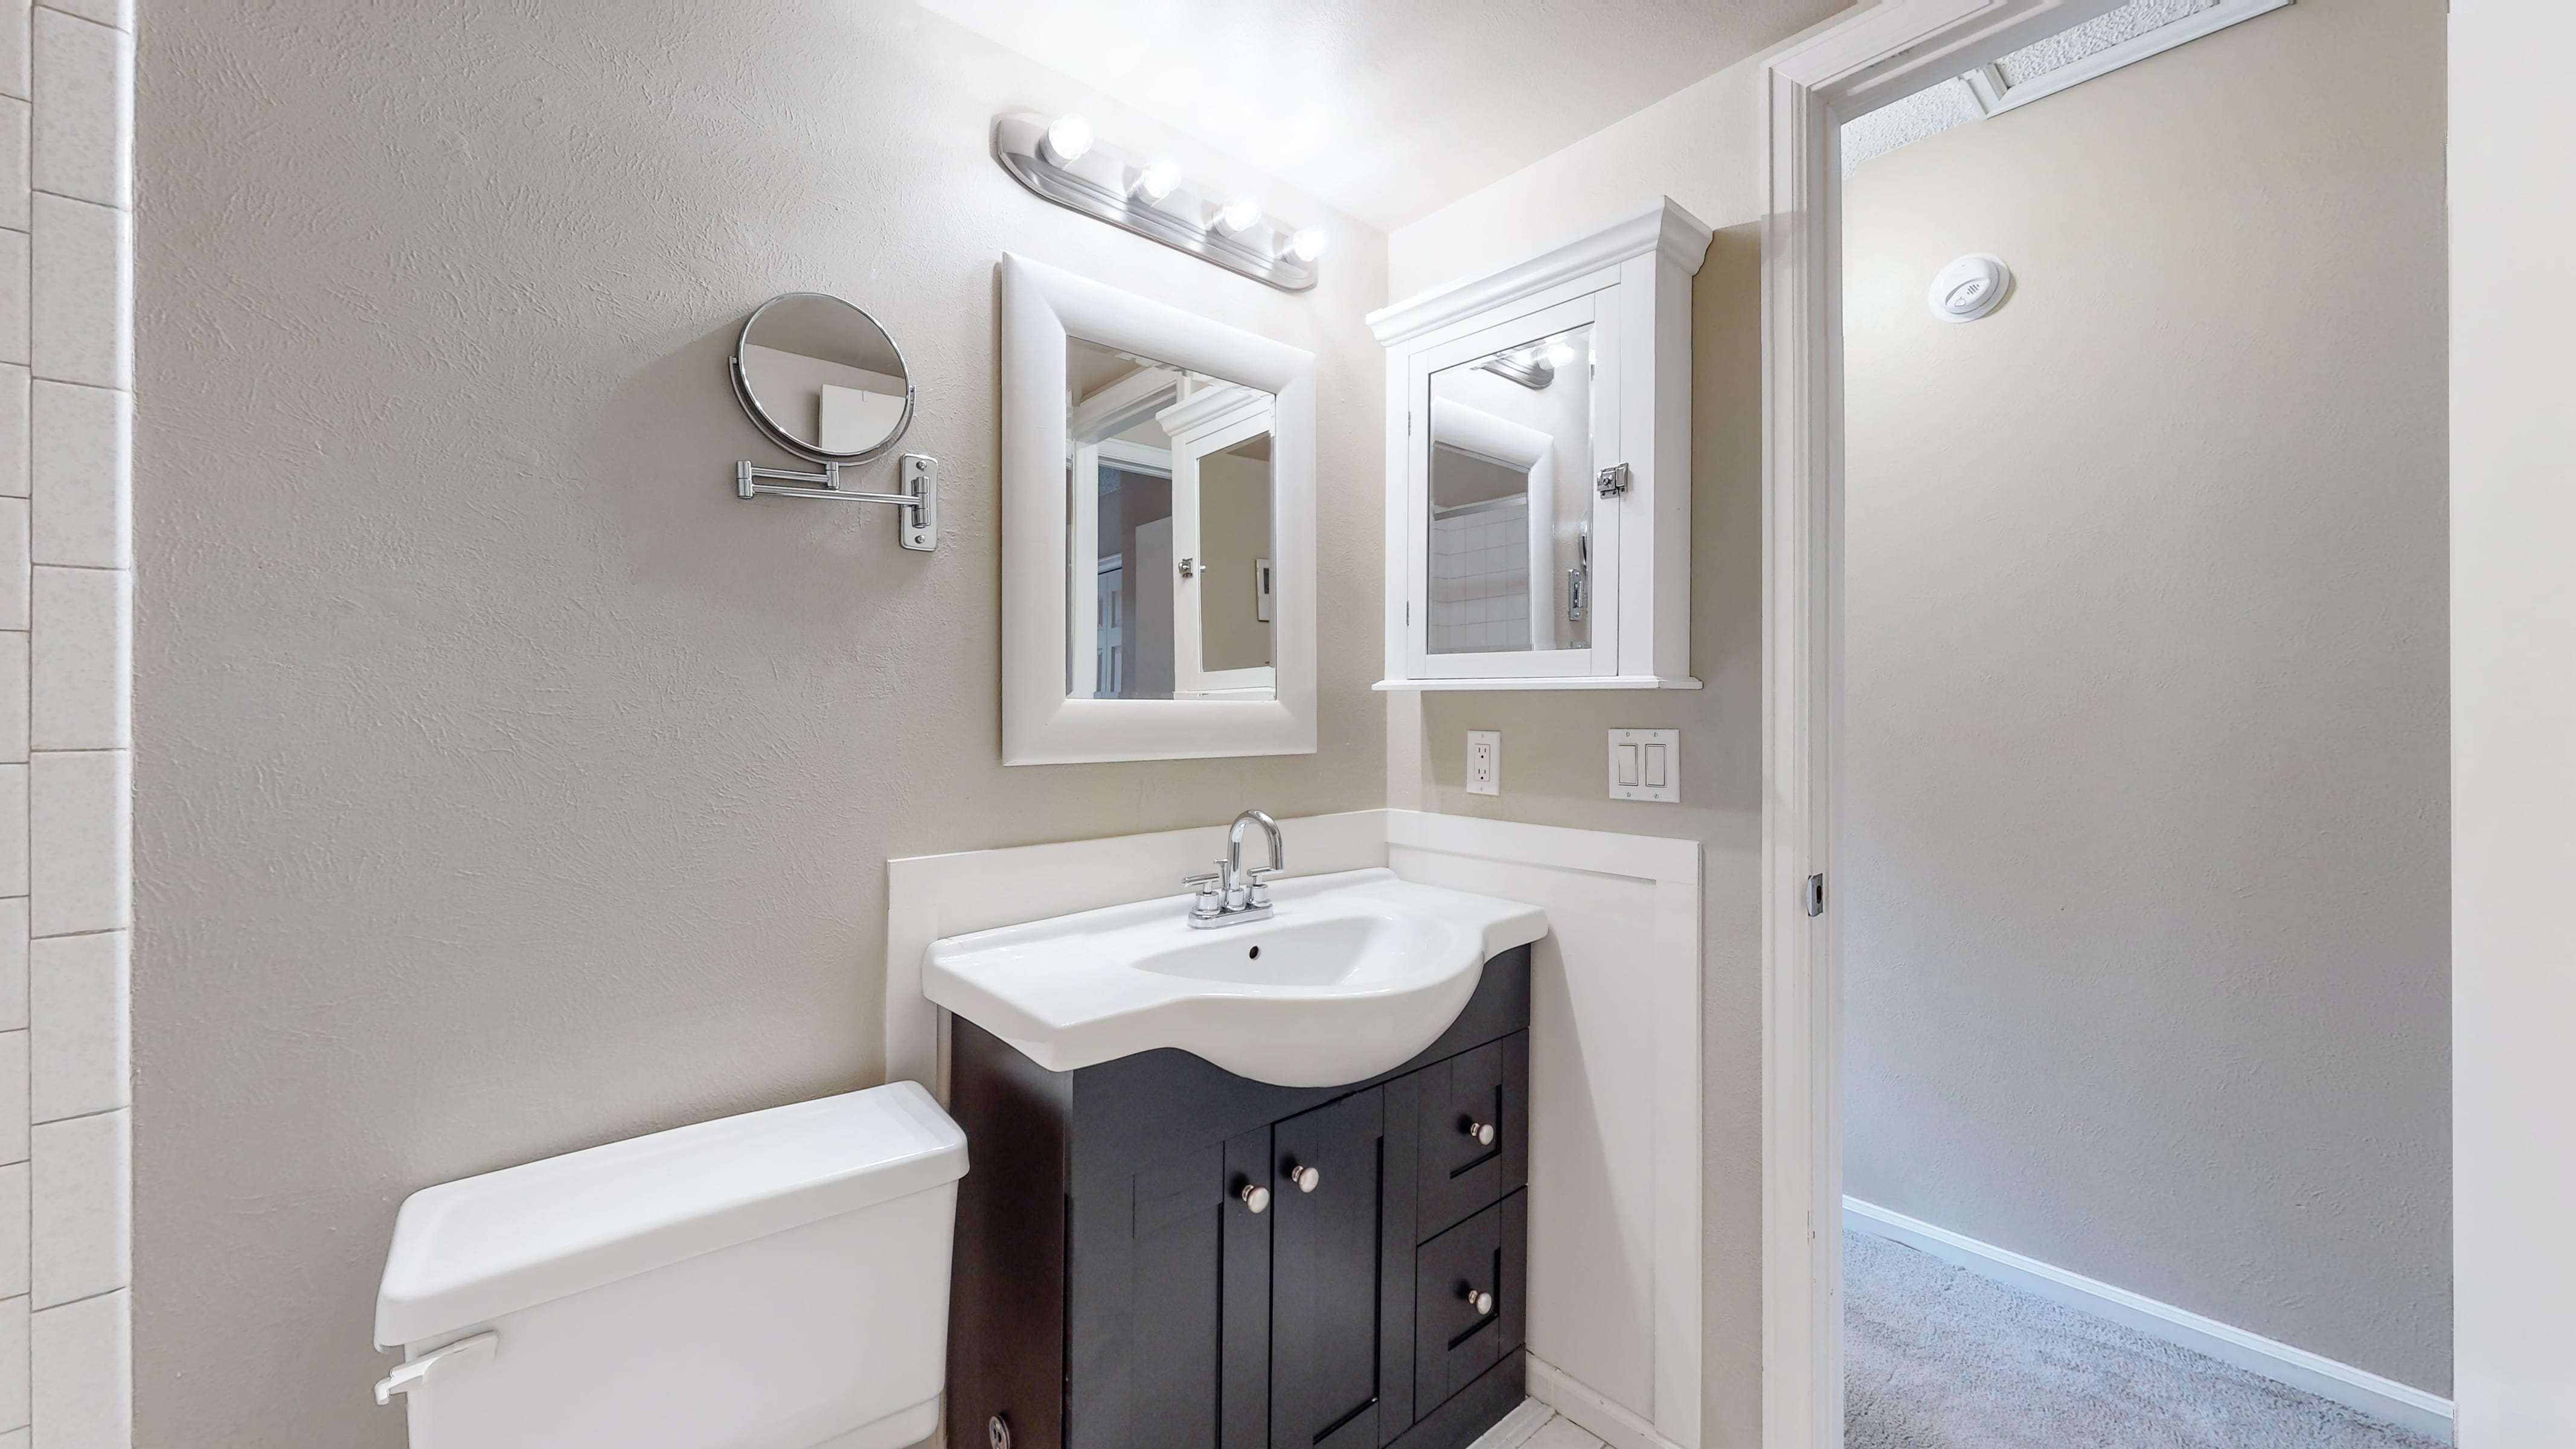 Home for sale in Arvada, bathroom with white sink, black vanity